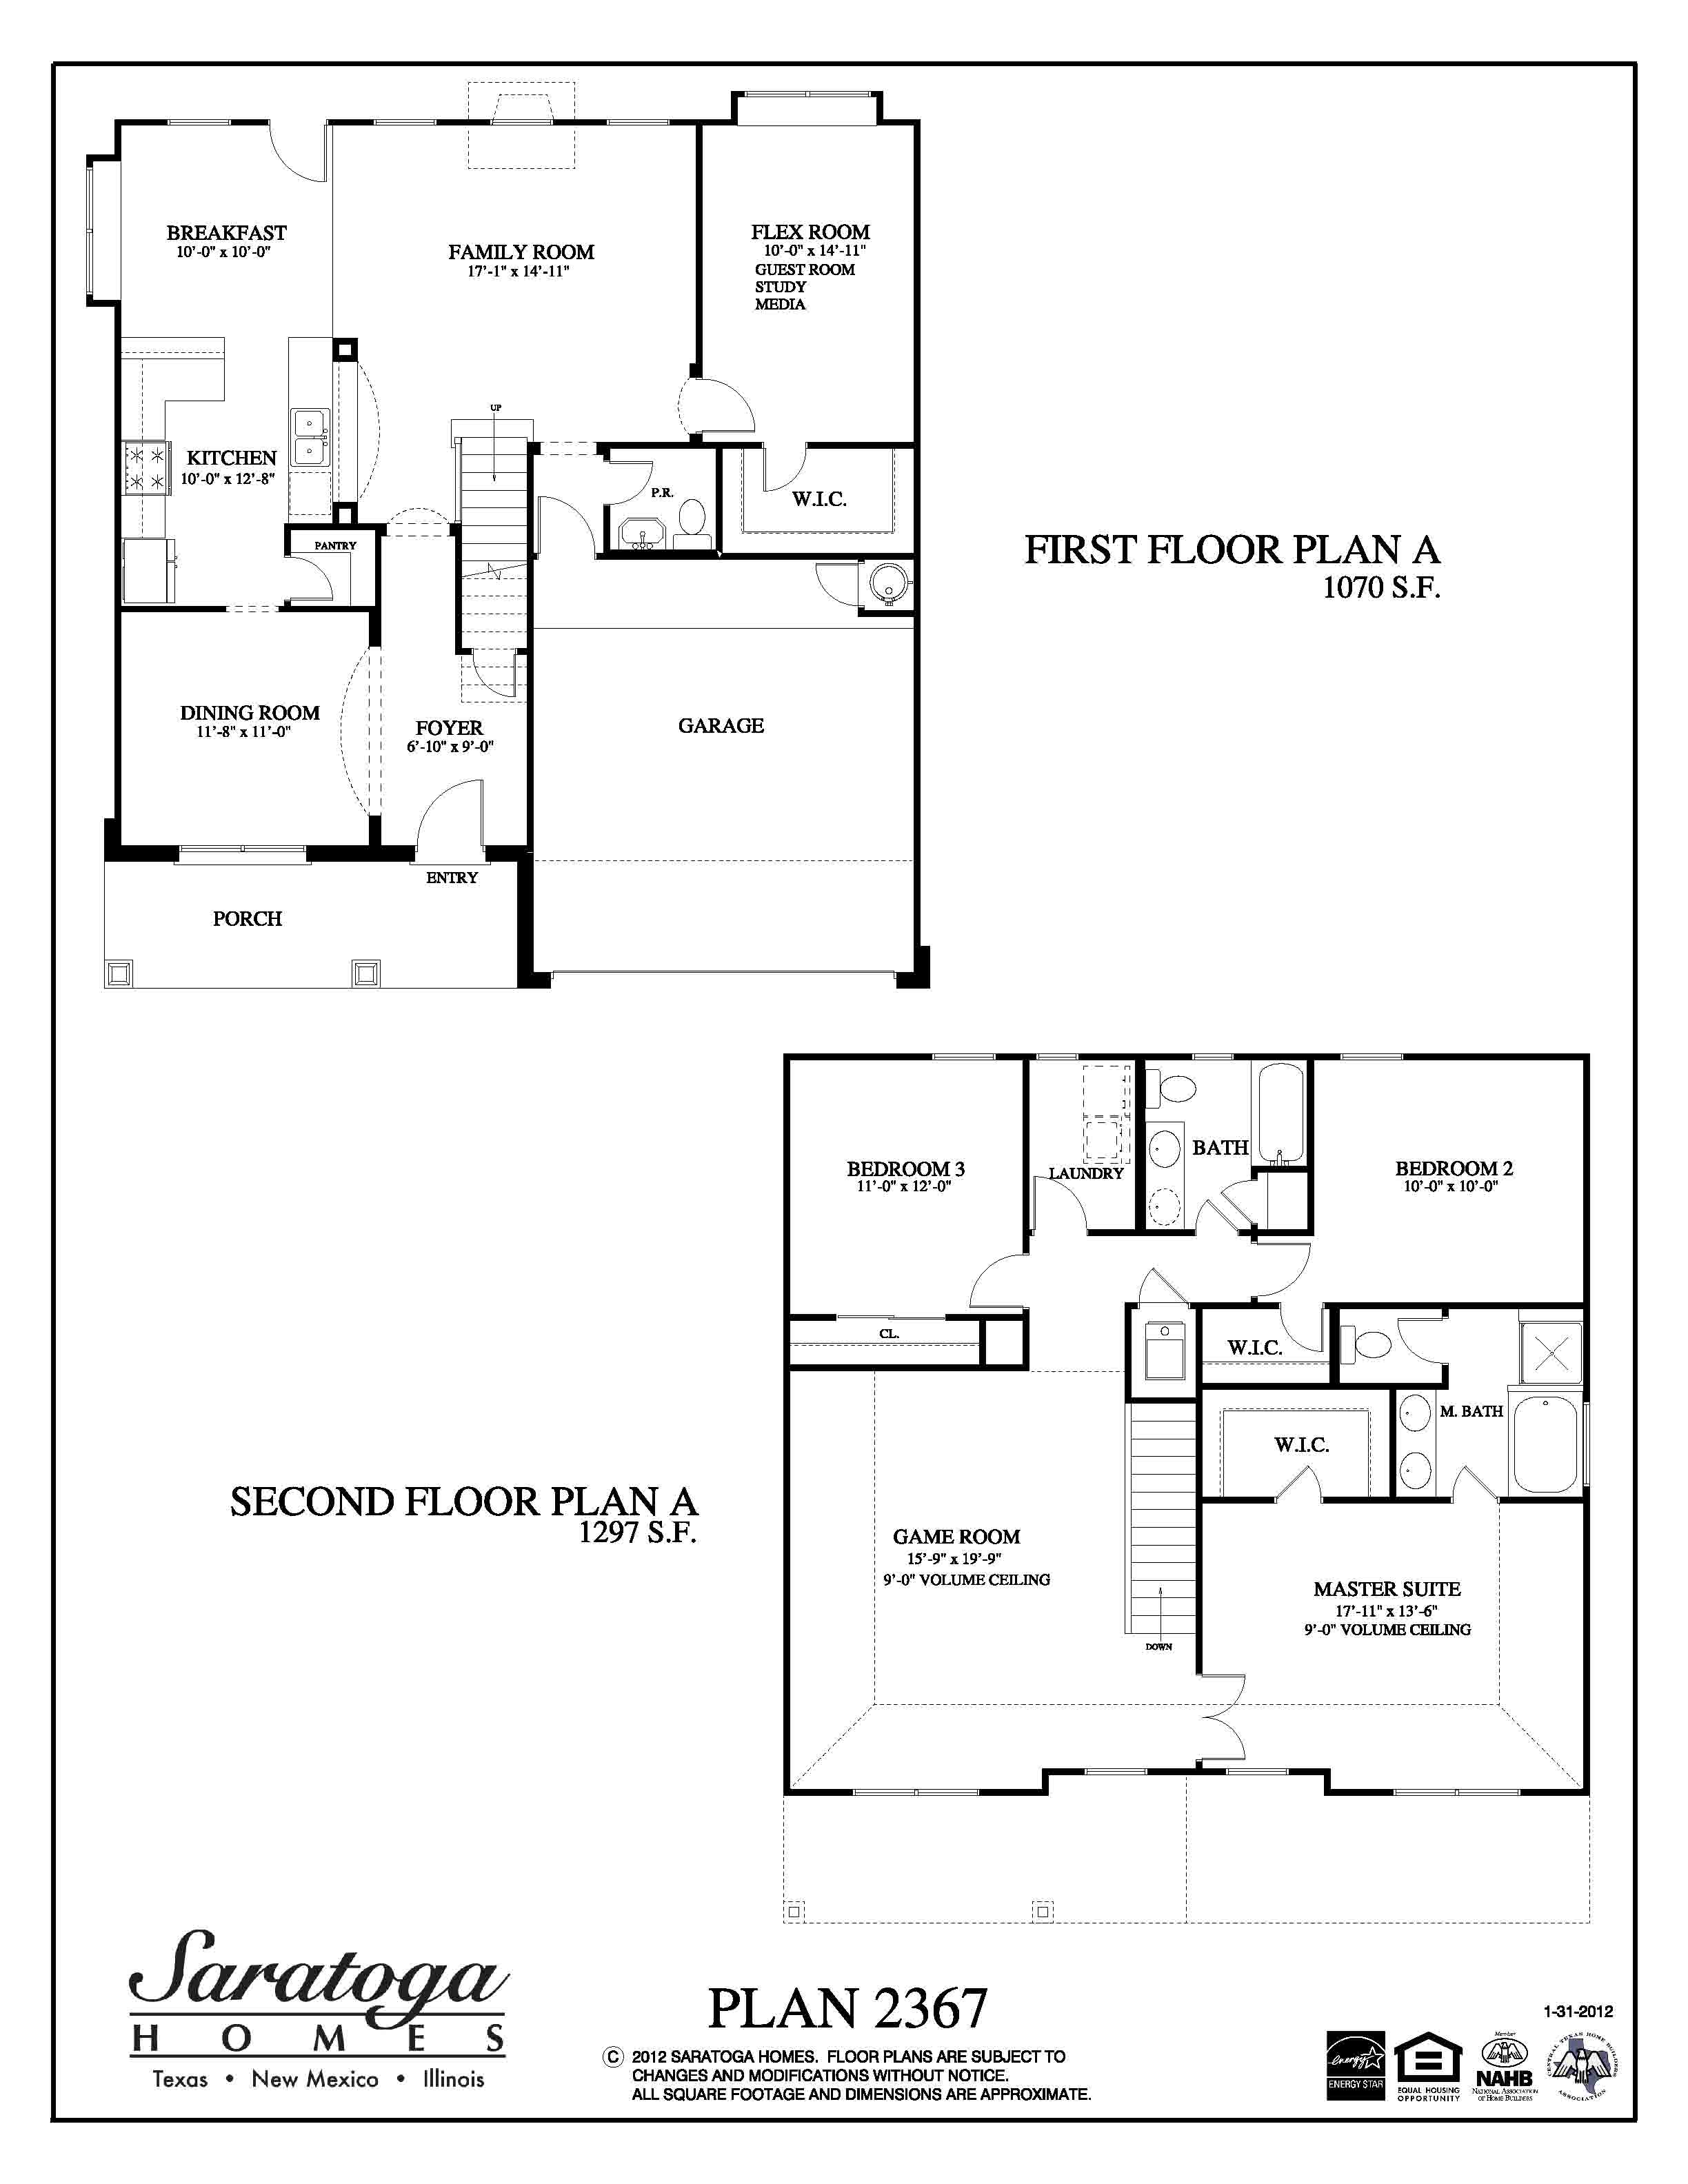 Plan 2367 saratoga homes houston for Floor plans for homes in texas